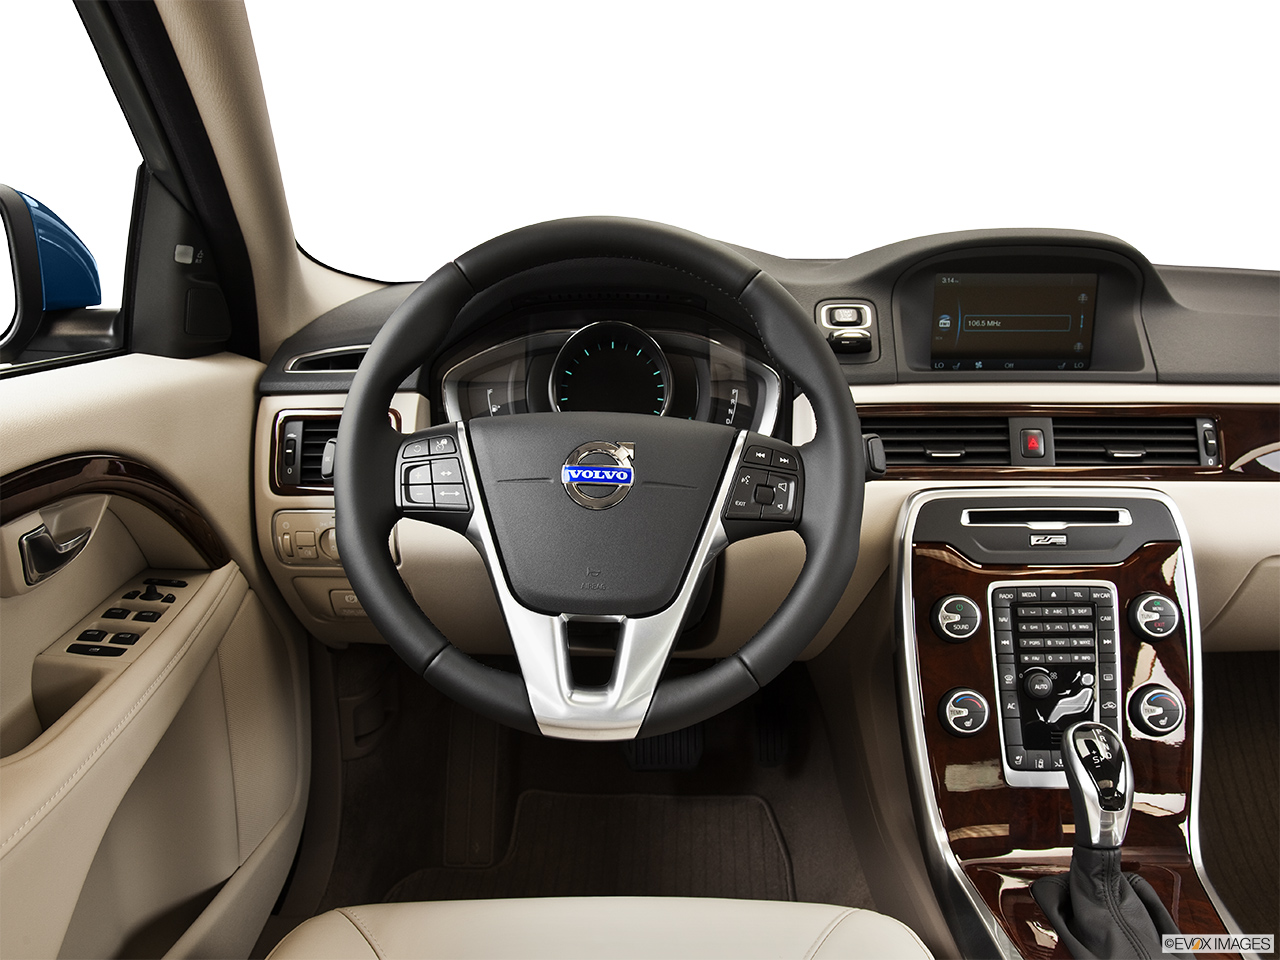 2014 Volvo S80 T6 AWD Platinum Steering wheel/Center Console.